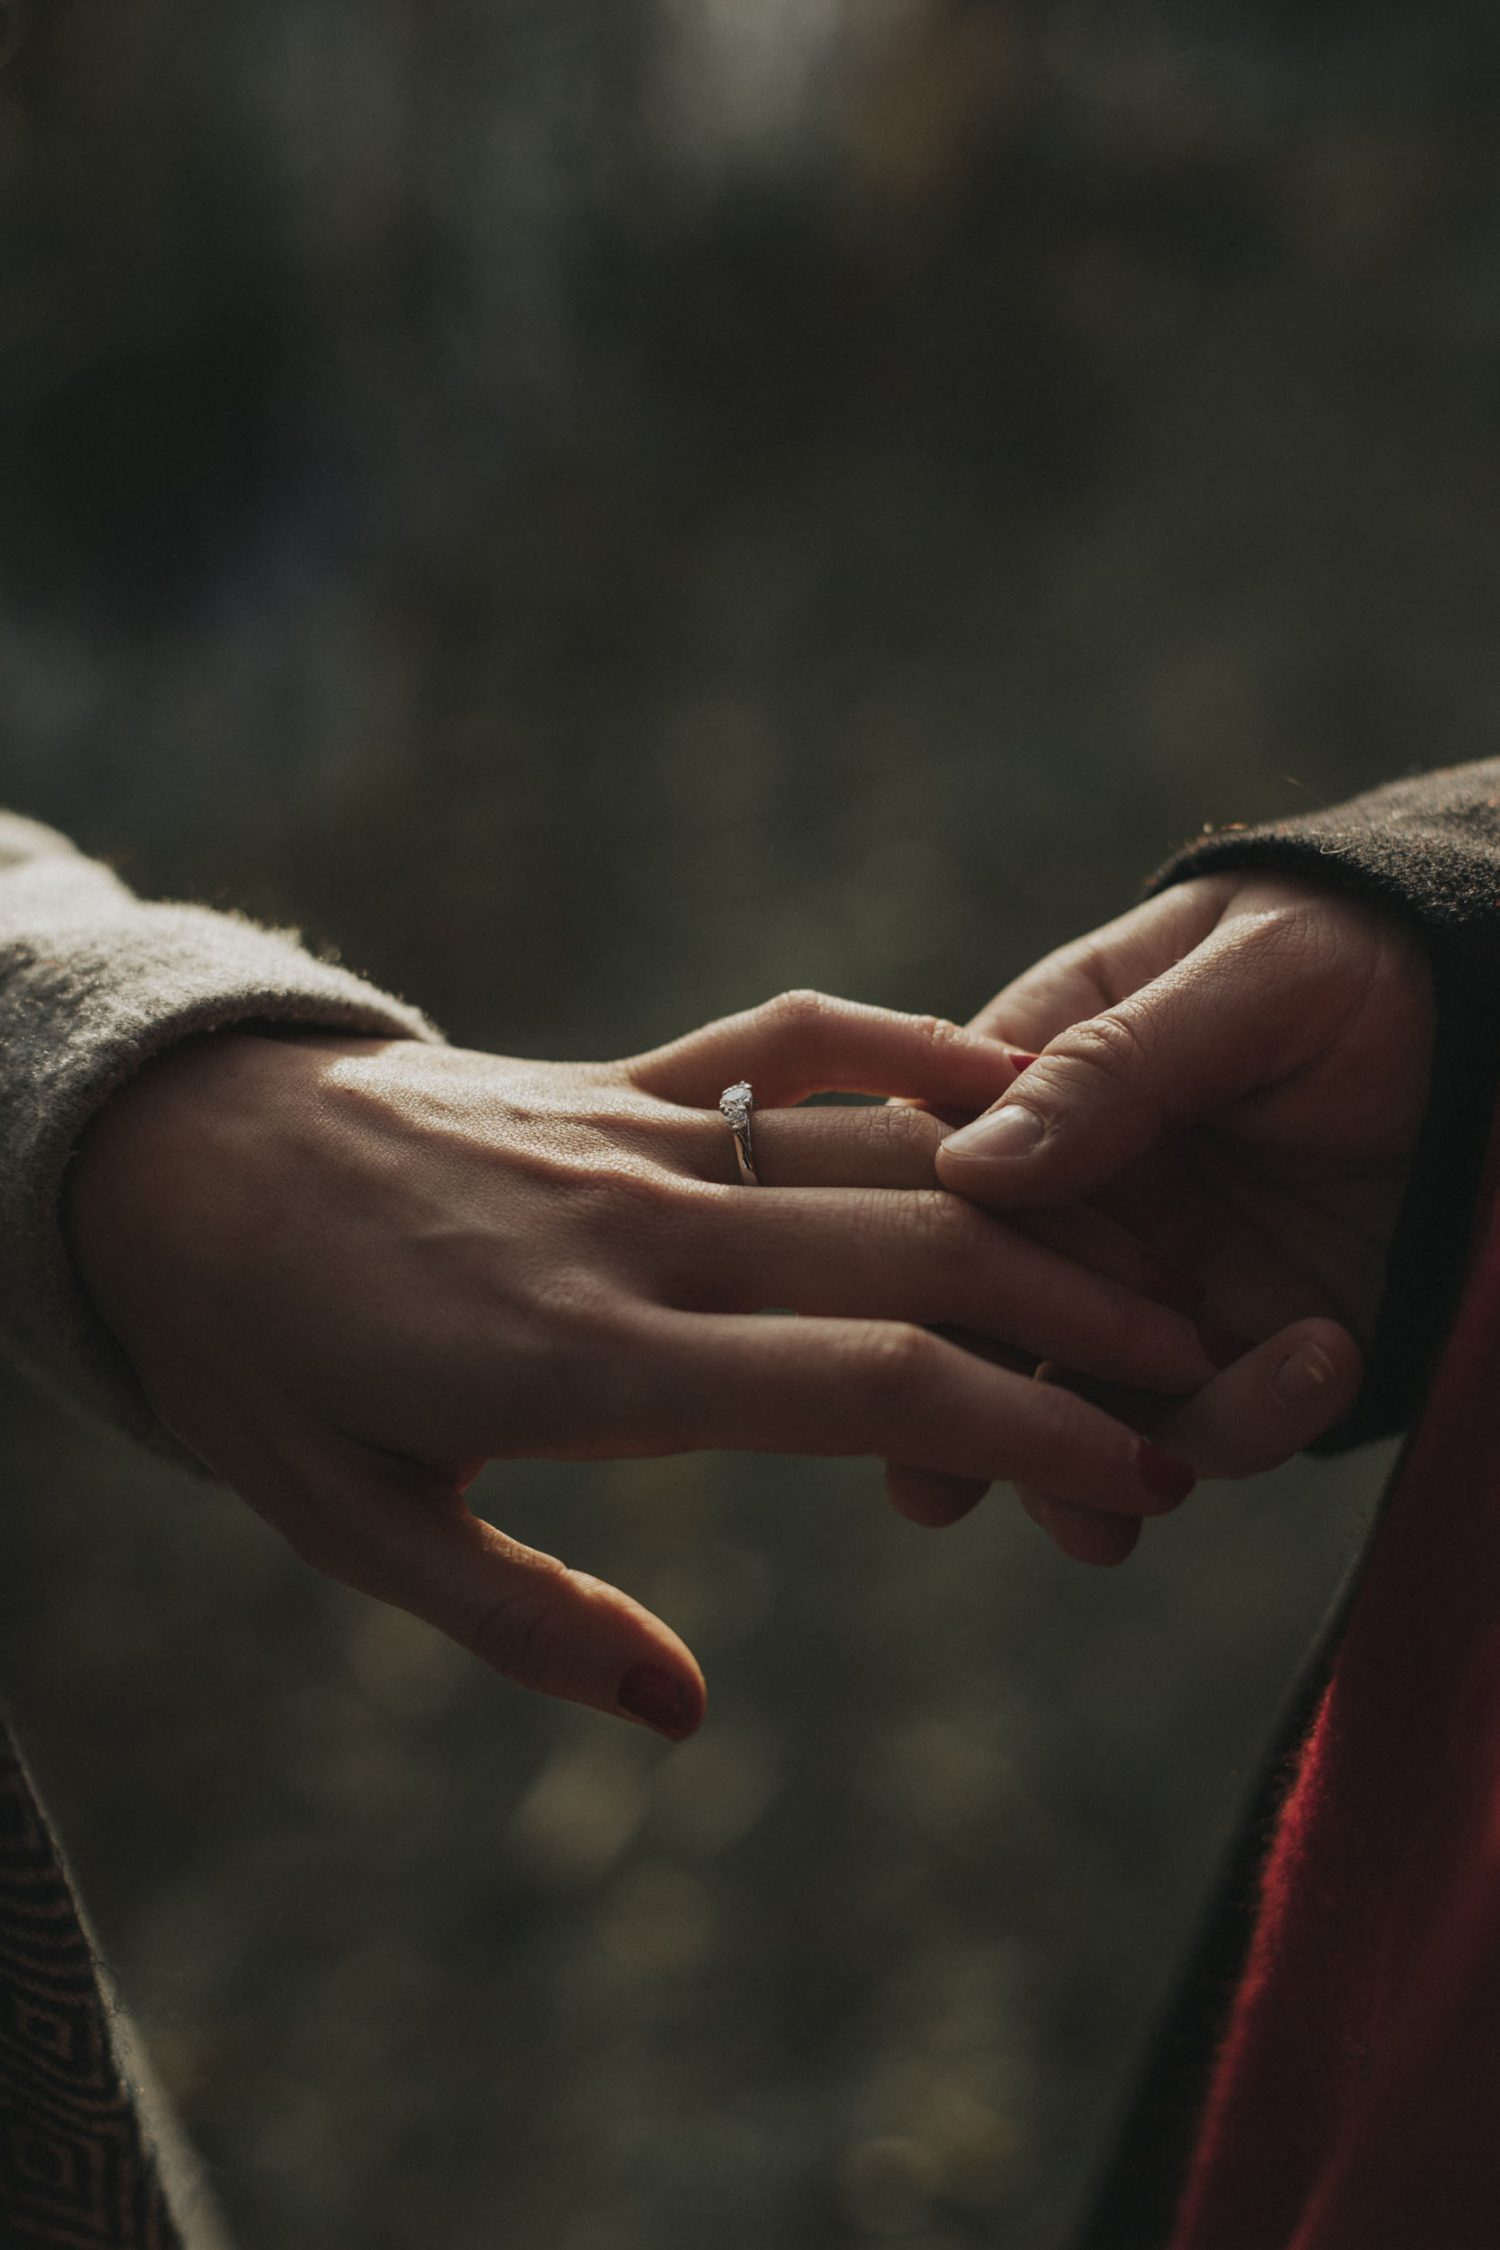 Edinburgh Surprise Proposal and Engagement Photoshoot Photography by Ceranna, Holyrood Park, detail of the engagement ring | Secret proposal in Edinburgh